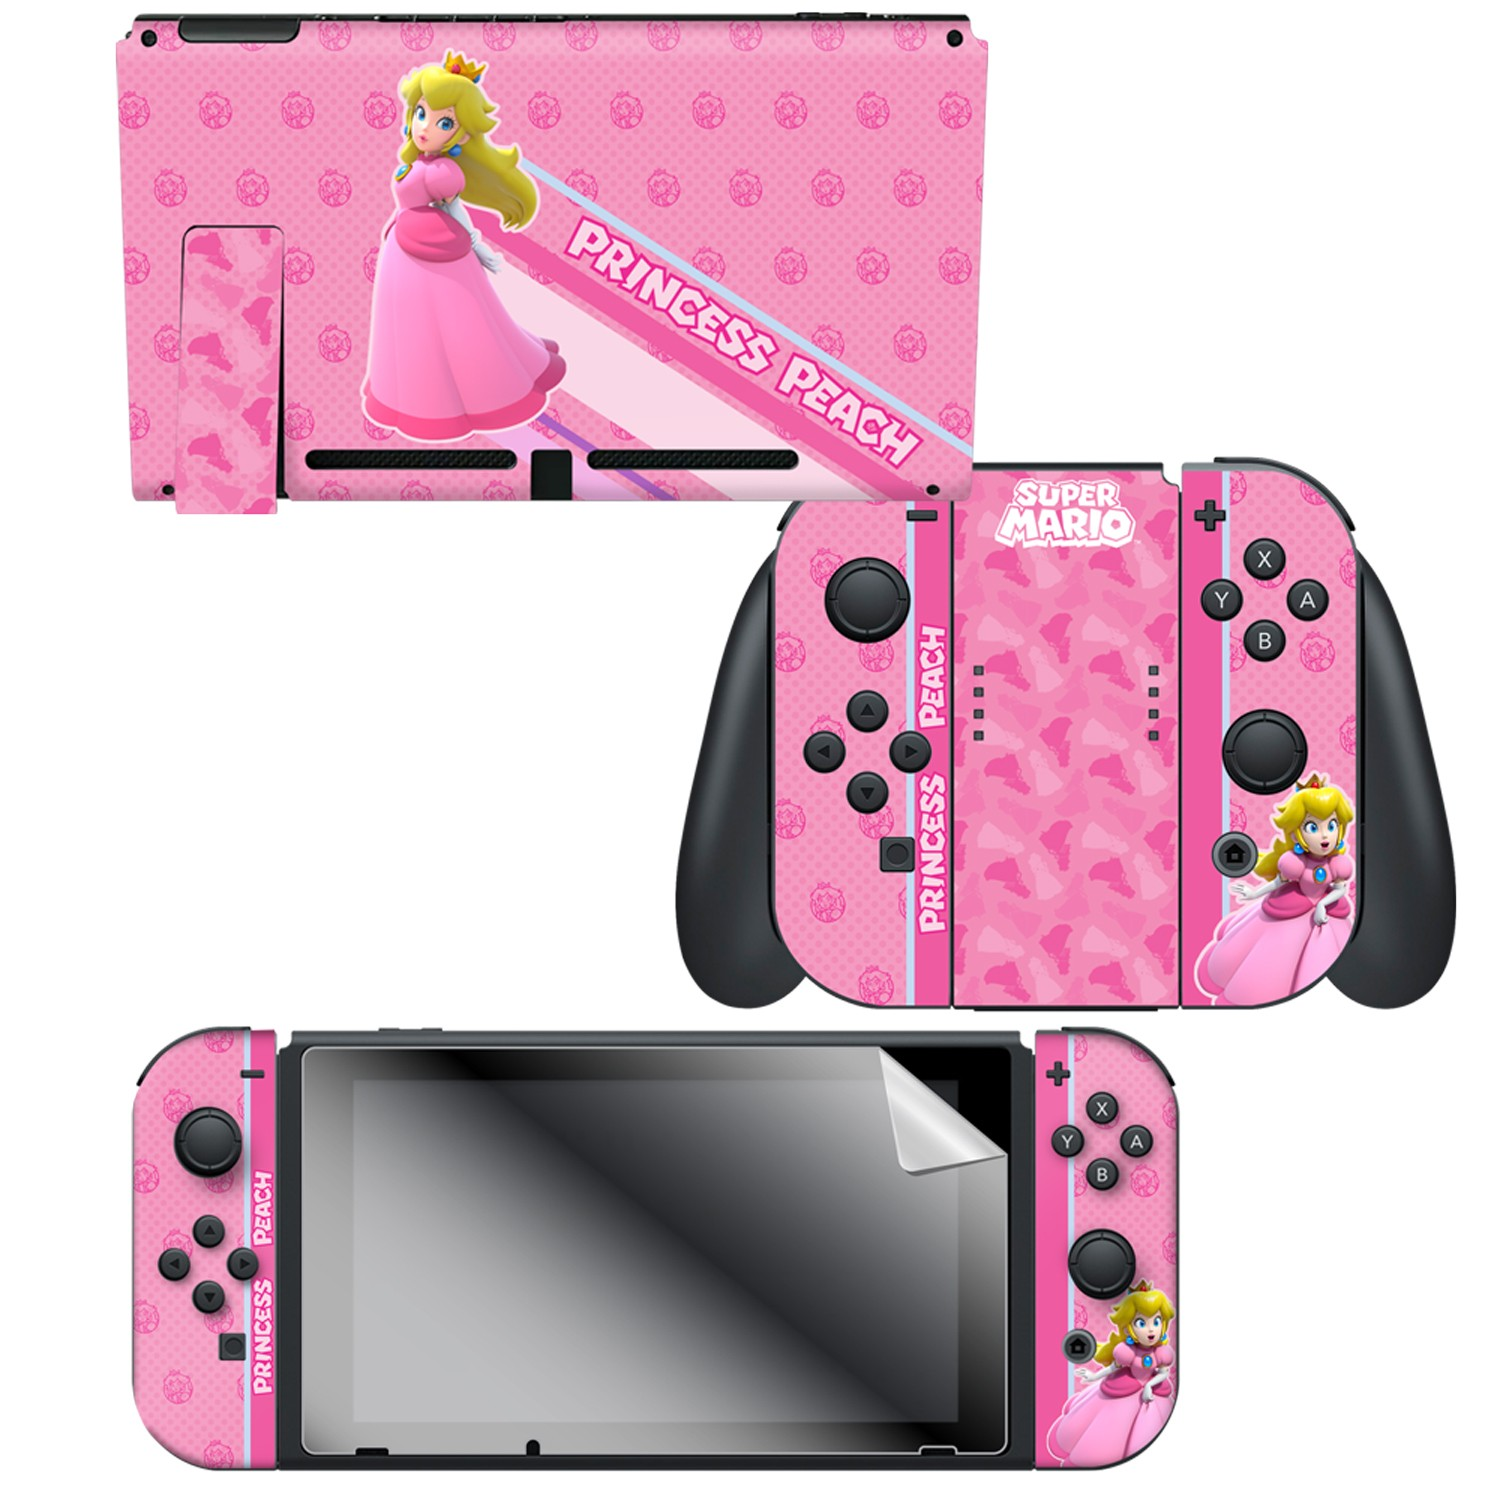 Super Mario Princess Peach Nintendo Switch Console Skin Joy Con